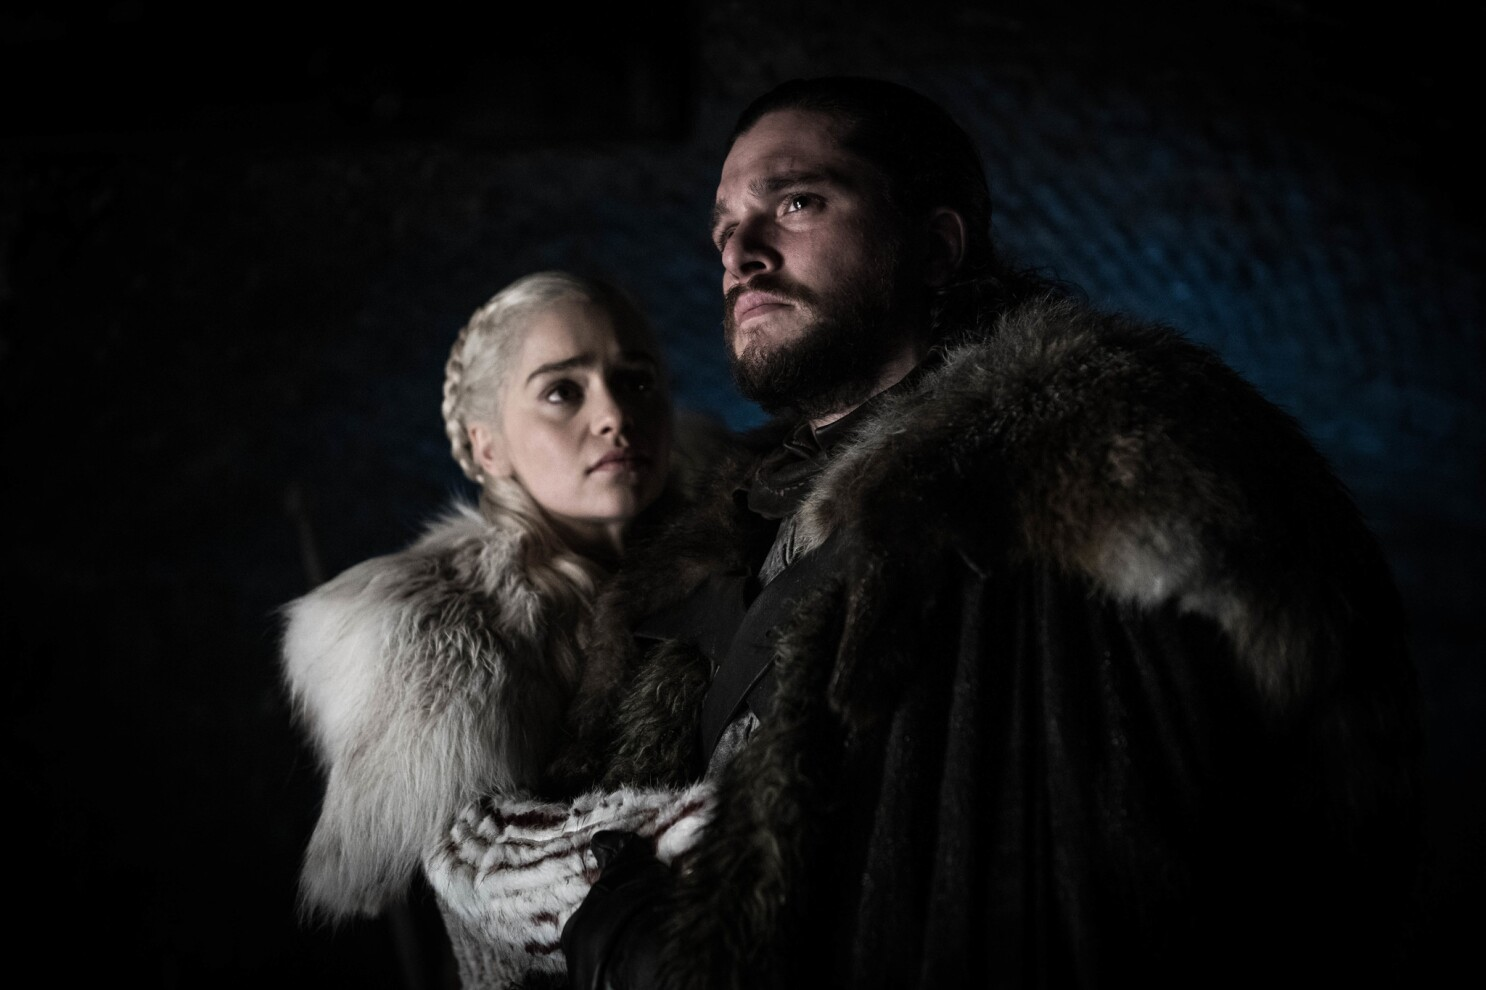 Game of Thrones' Season 8 documentary will air on HBO after